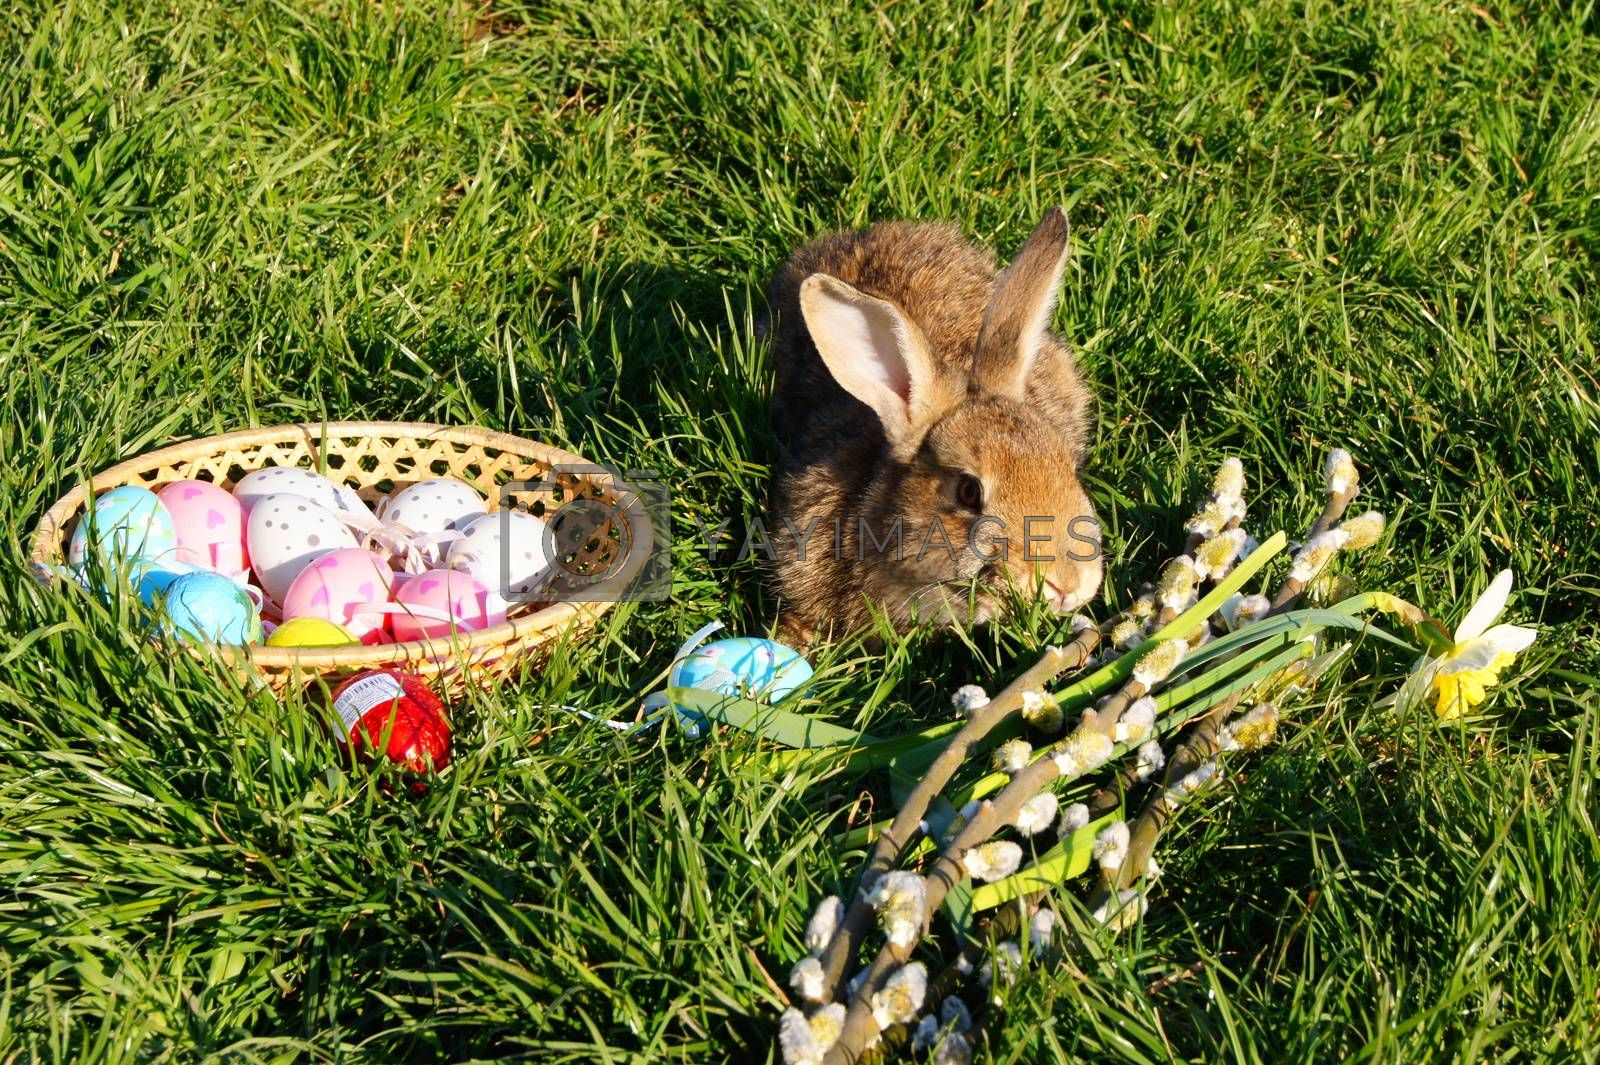 Feast of the Passover, Easter eggs and rabbits.